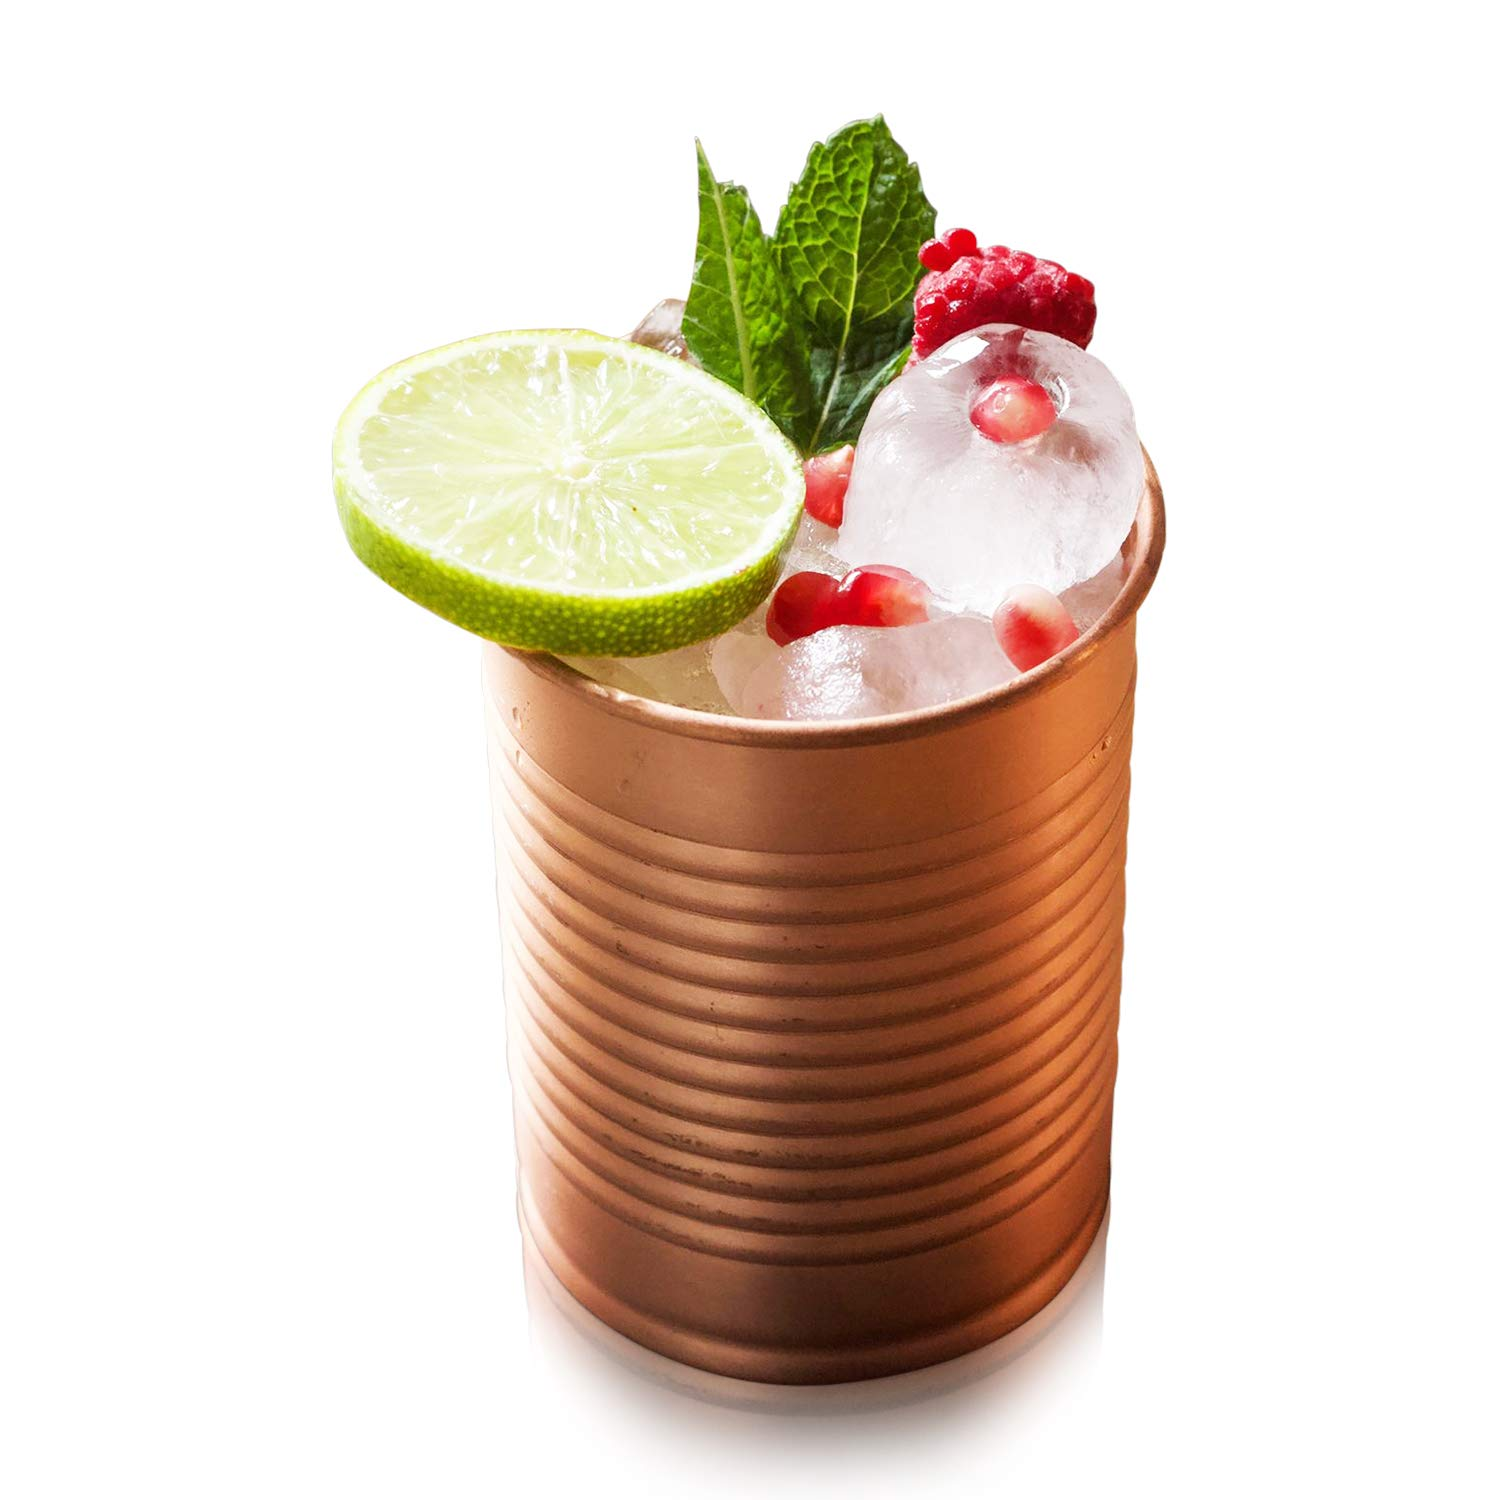 Kosdeg Copper Cocktail Tins Set of 2 12oz - Chosen By Professional Bartenders - Bean Tin Design - Perfect Copper Mug Bar Set for Better Drinks - Ice Cold In Seconds